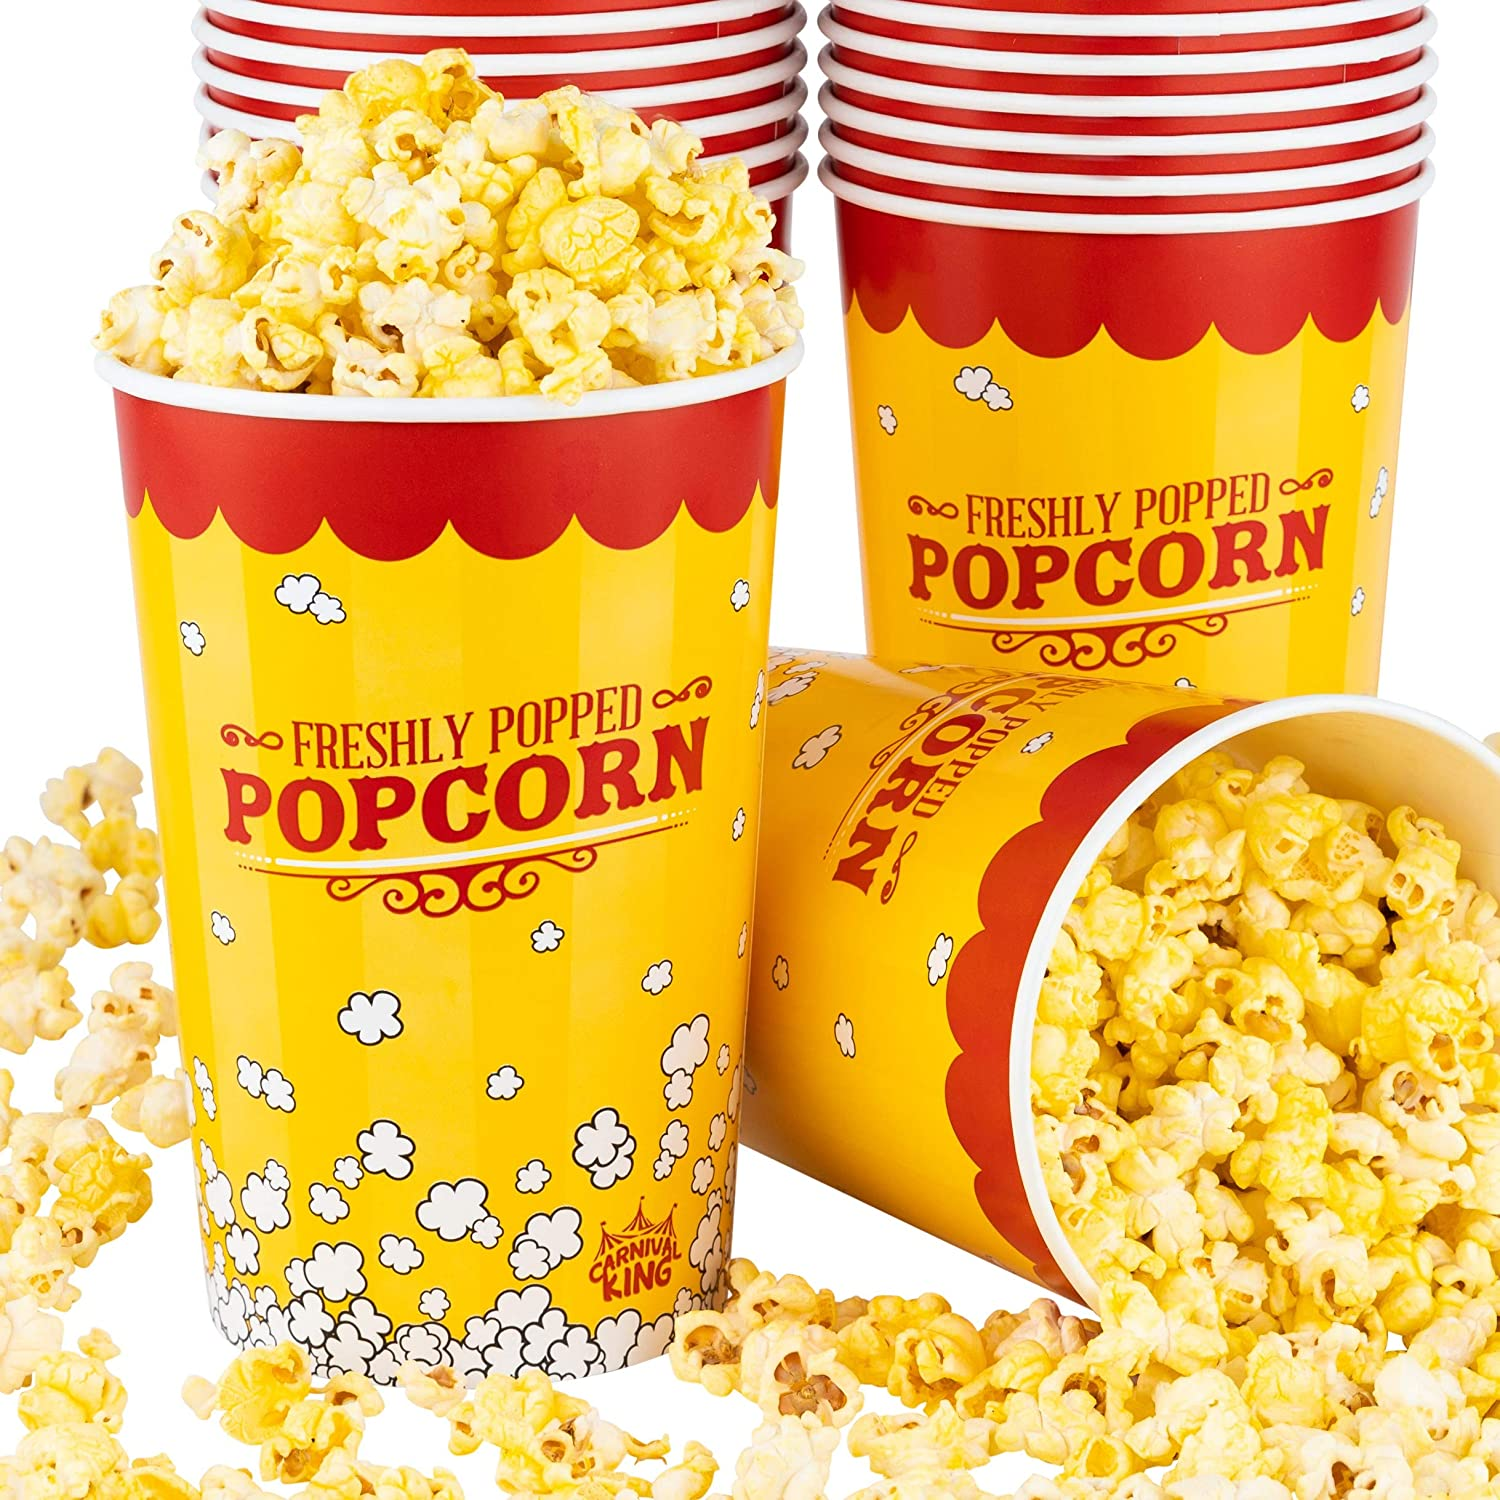 Stock Your Home 64 Oz Popcorn Buckets (25 Count) - Greaseproof Vintage Style Popcorn Tubs - Disposable Popcorn Containers for Movie Theaters, Amusement Parks, Circus, Concession Stands, Themed Parties